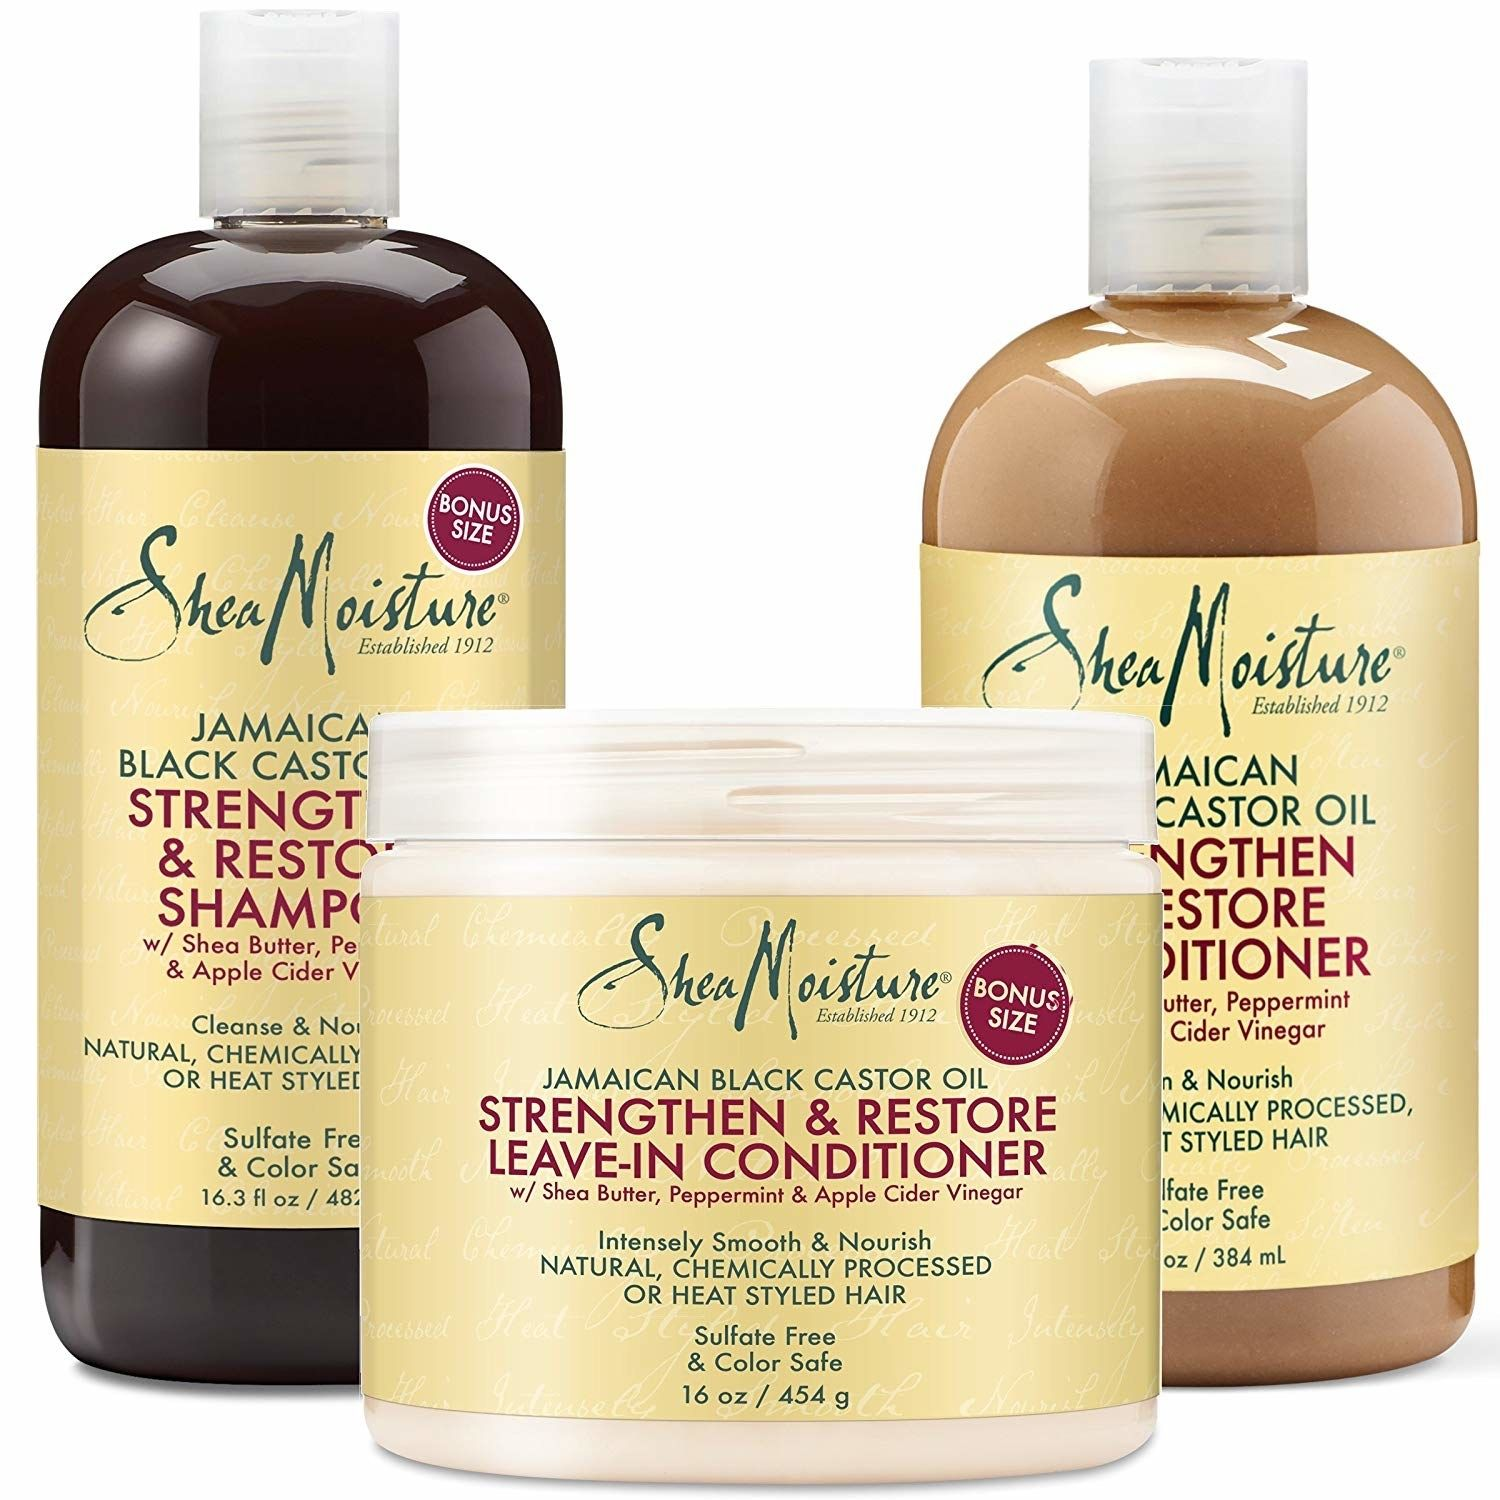 Hundreds And Hundreds Of People Agree These Hair Products Are Totally Worth The Money Shea Moisture Products Good Shampoo And Conditioner Black Castor Oil